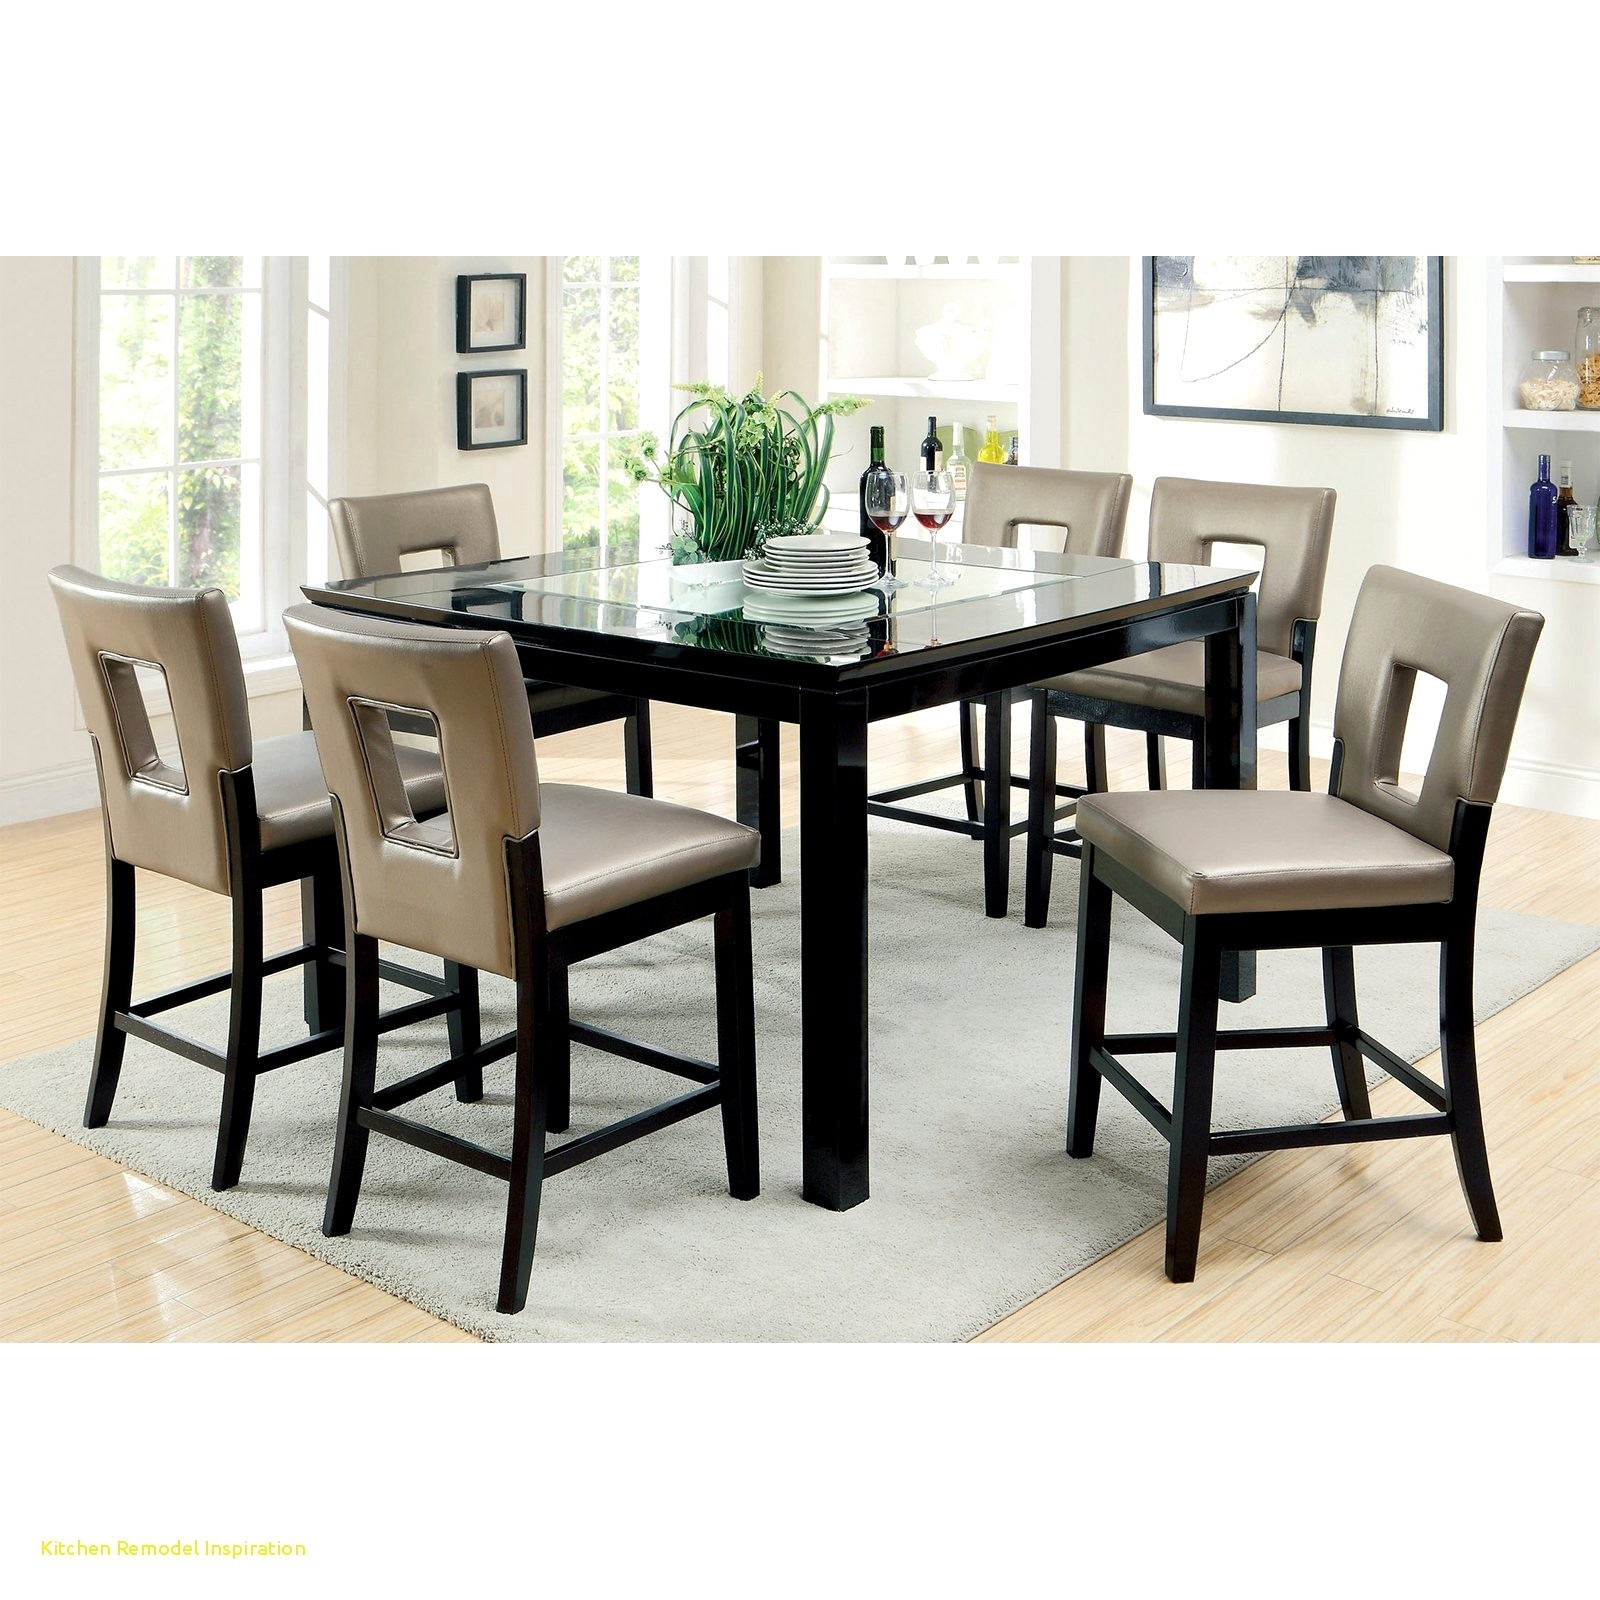 Baby Chairs For Dining Table Inspirational Crosley 5 Piece Pub High Regarding 2017 Kirsten 5 Piece Dining Sets (Image 4 of 20)